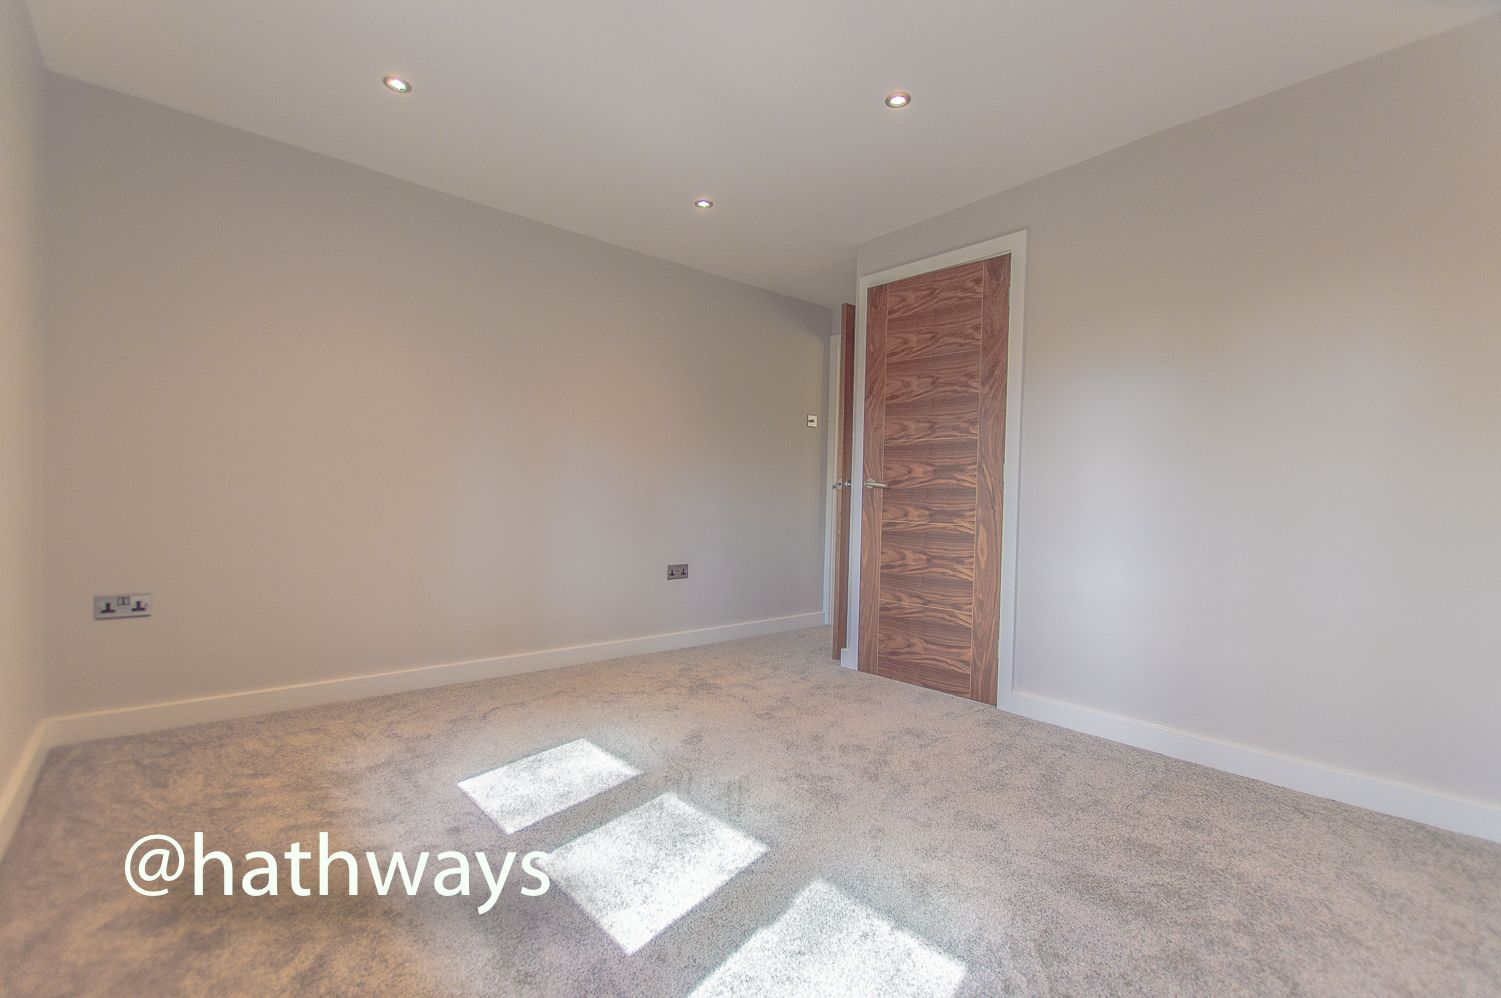 3 bed house for sale in Garw Wood Drive  - Property Image 42